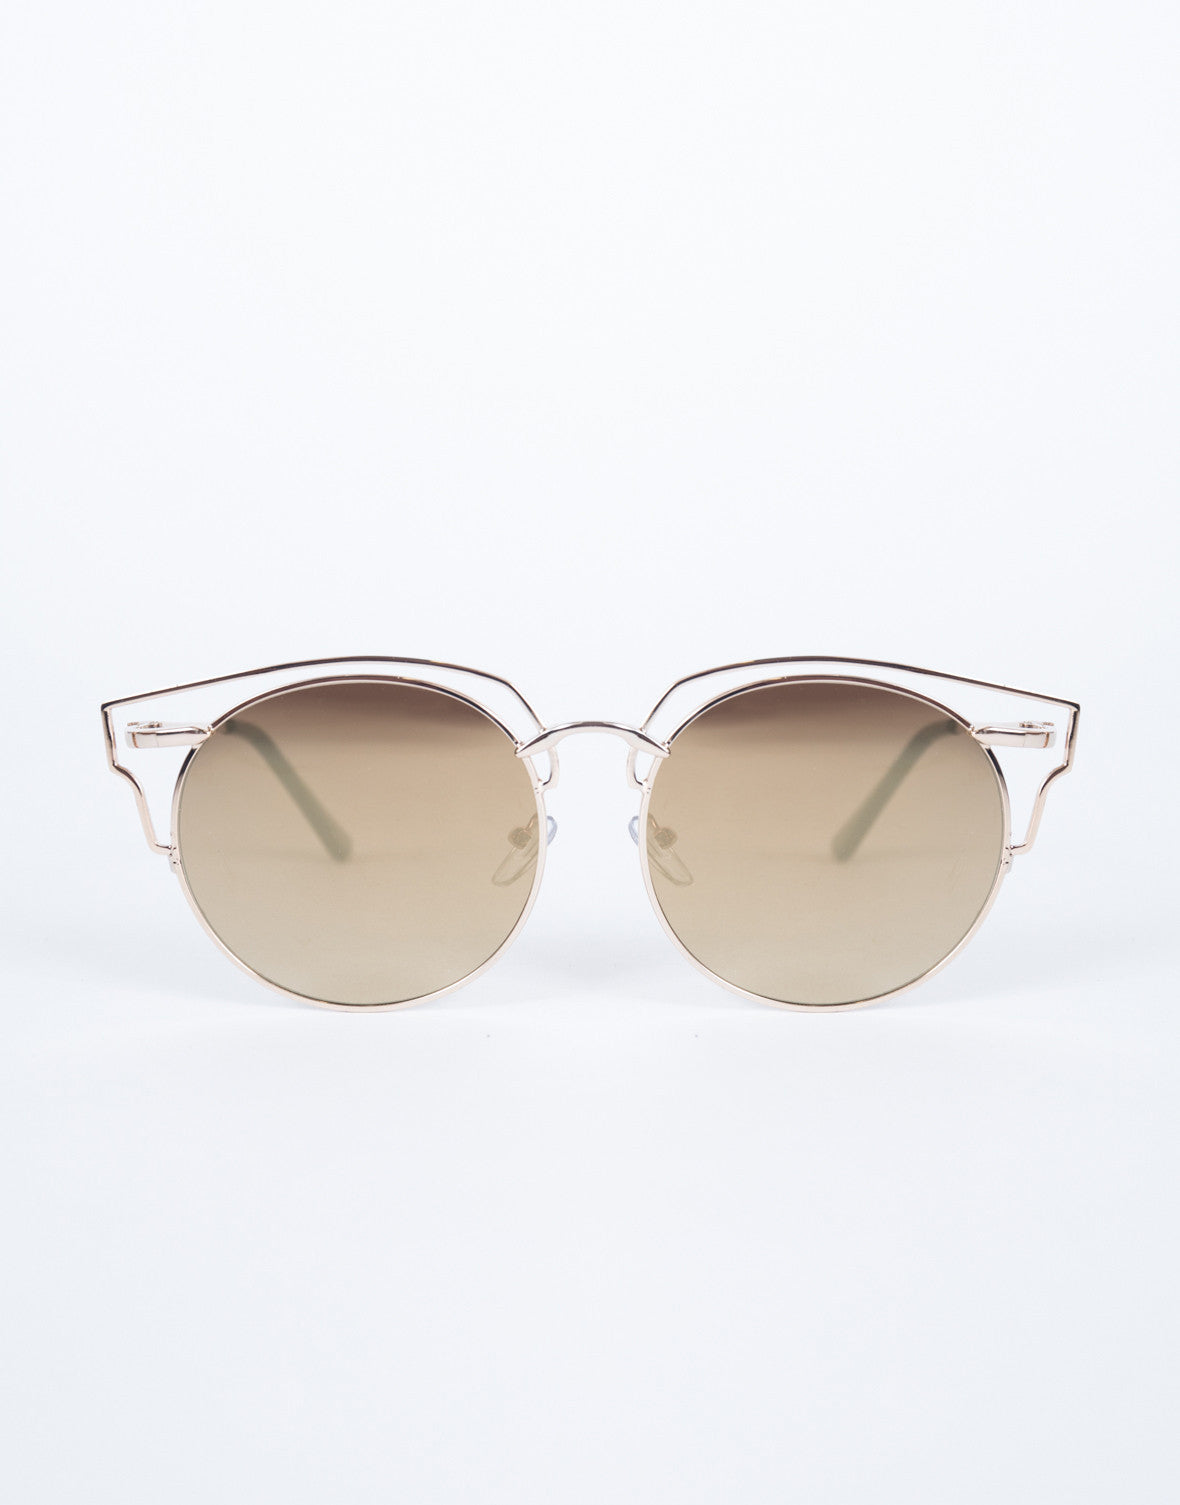 Brown Tessa Cut-Out Sunnies - Front View